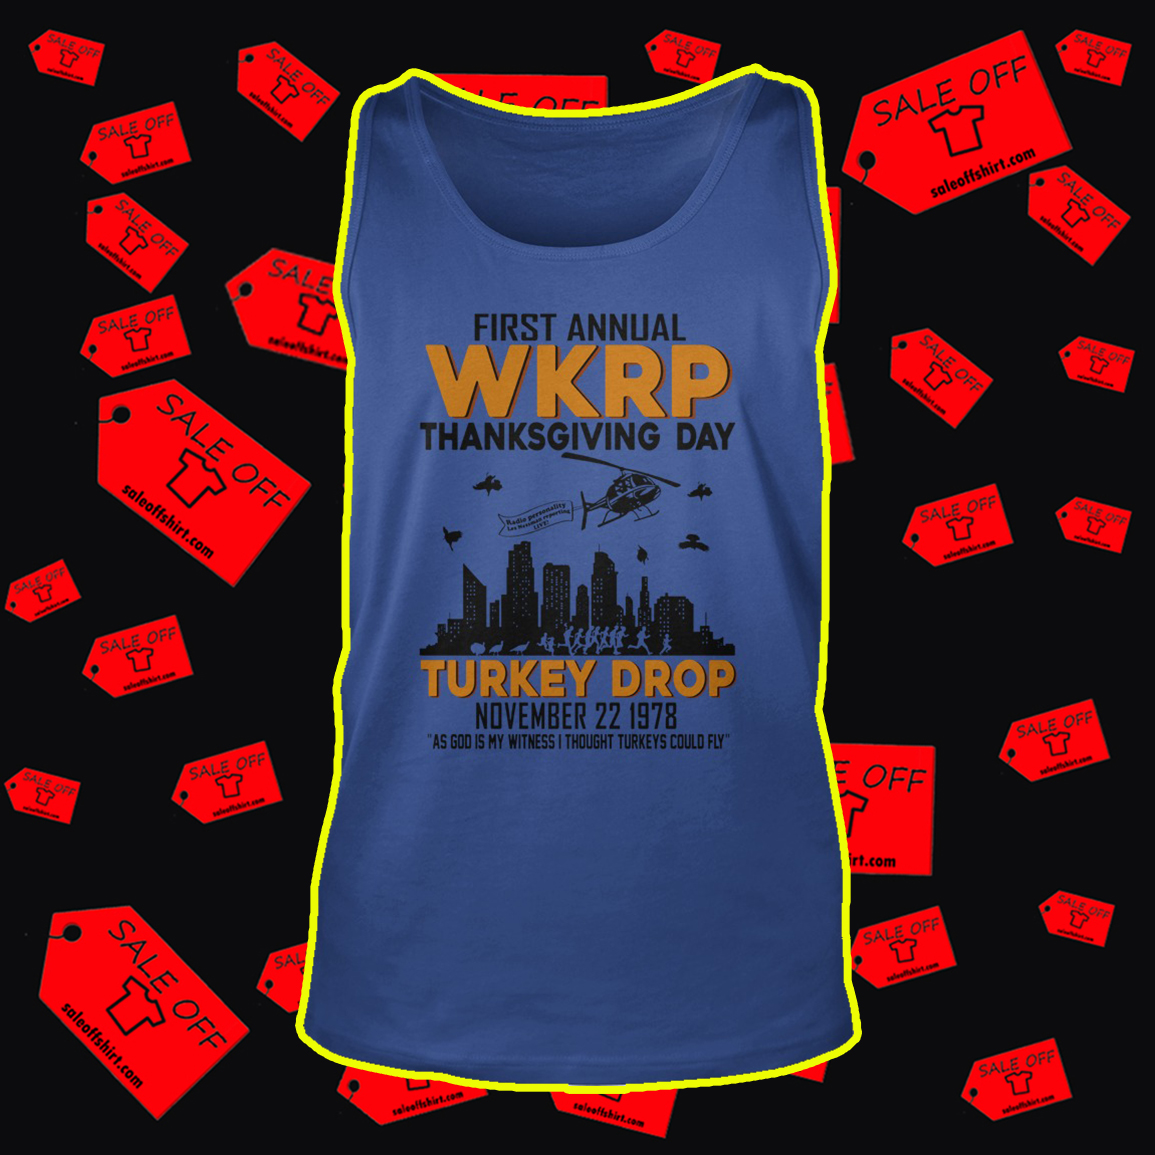 First annual WKRP thanksgiving day Turkey Drop tank top